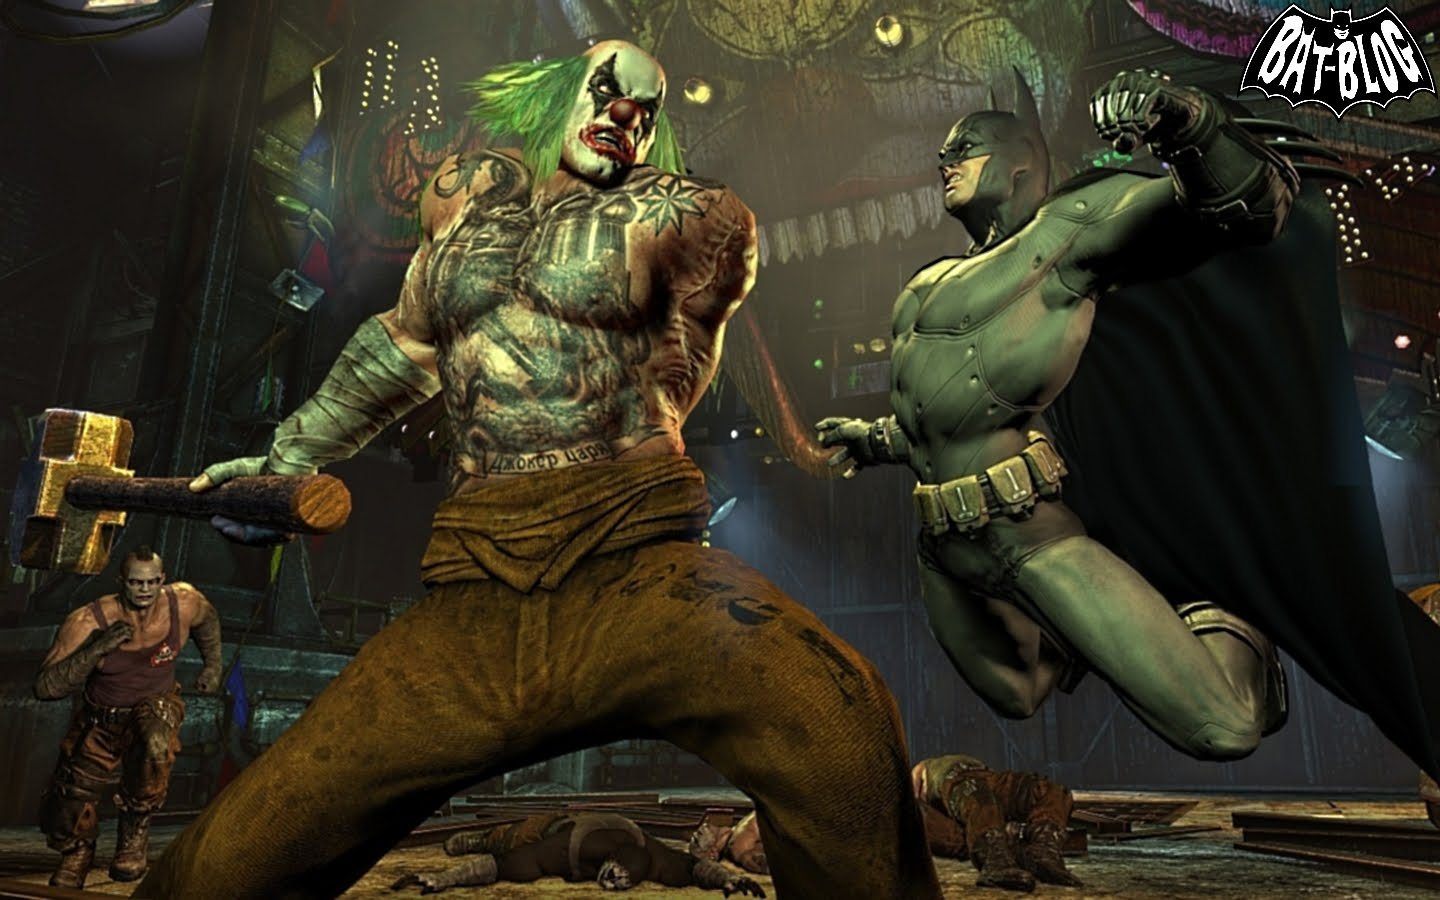 http://3.bp.blogspot.com/-Zqgj7ZPrrGo/TX09UQAqeZI/AAAAAAAAOsI/wk2Zv6tXQDE/s1600/wallpaper-batman-arkham-city-video-game-xbox.jpg